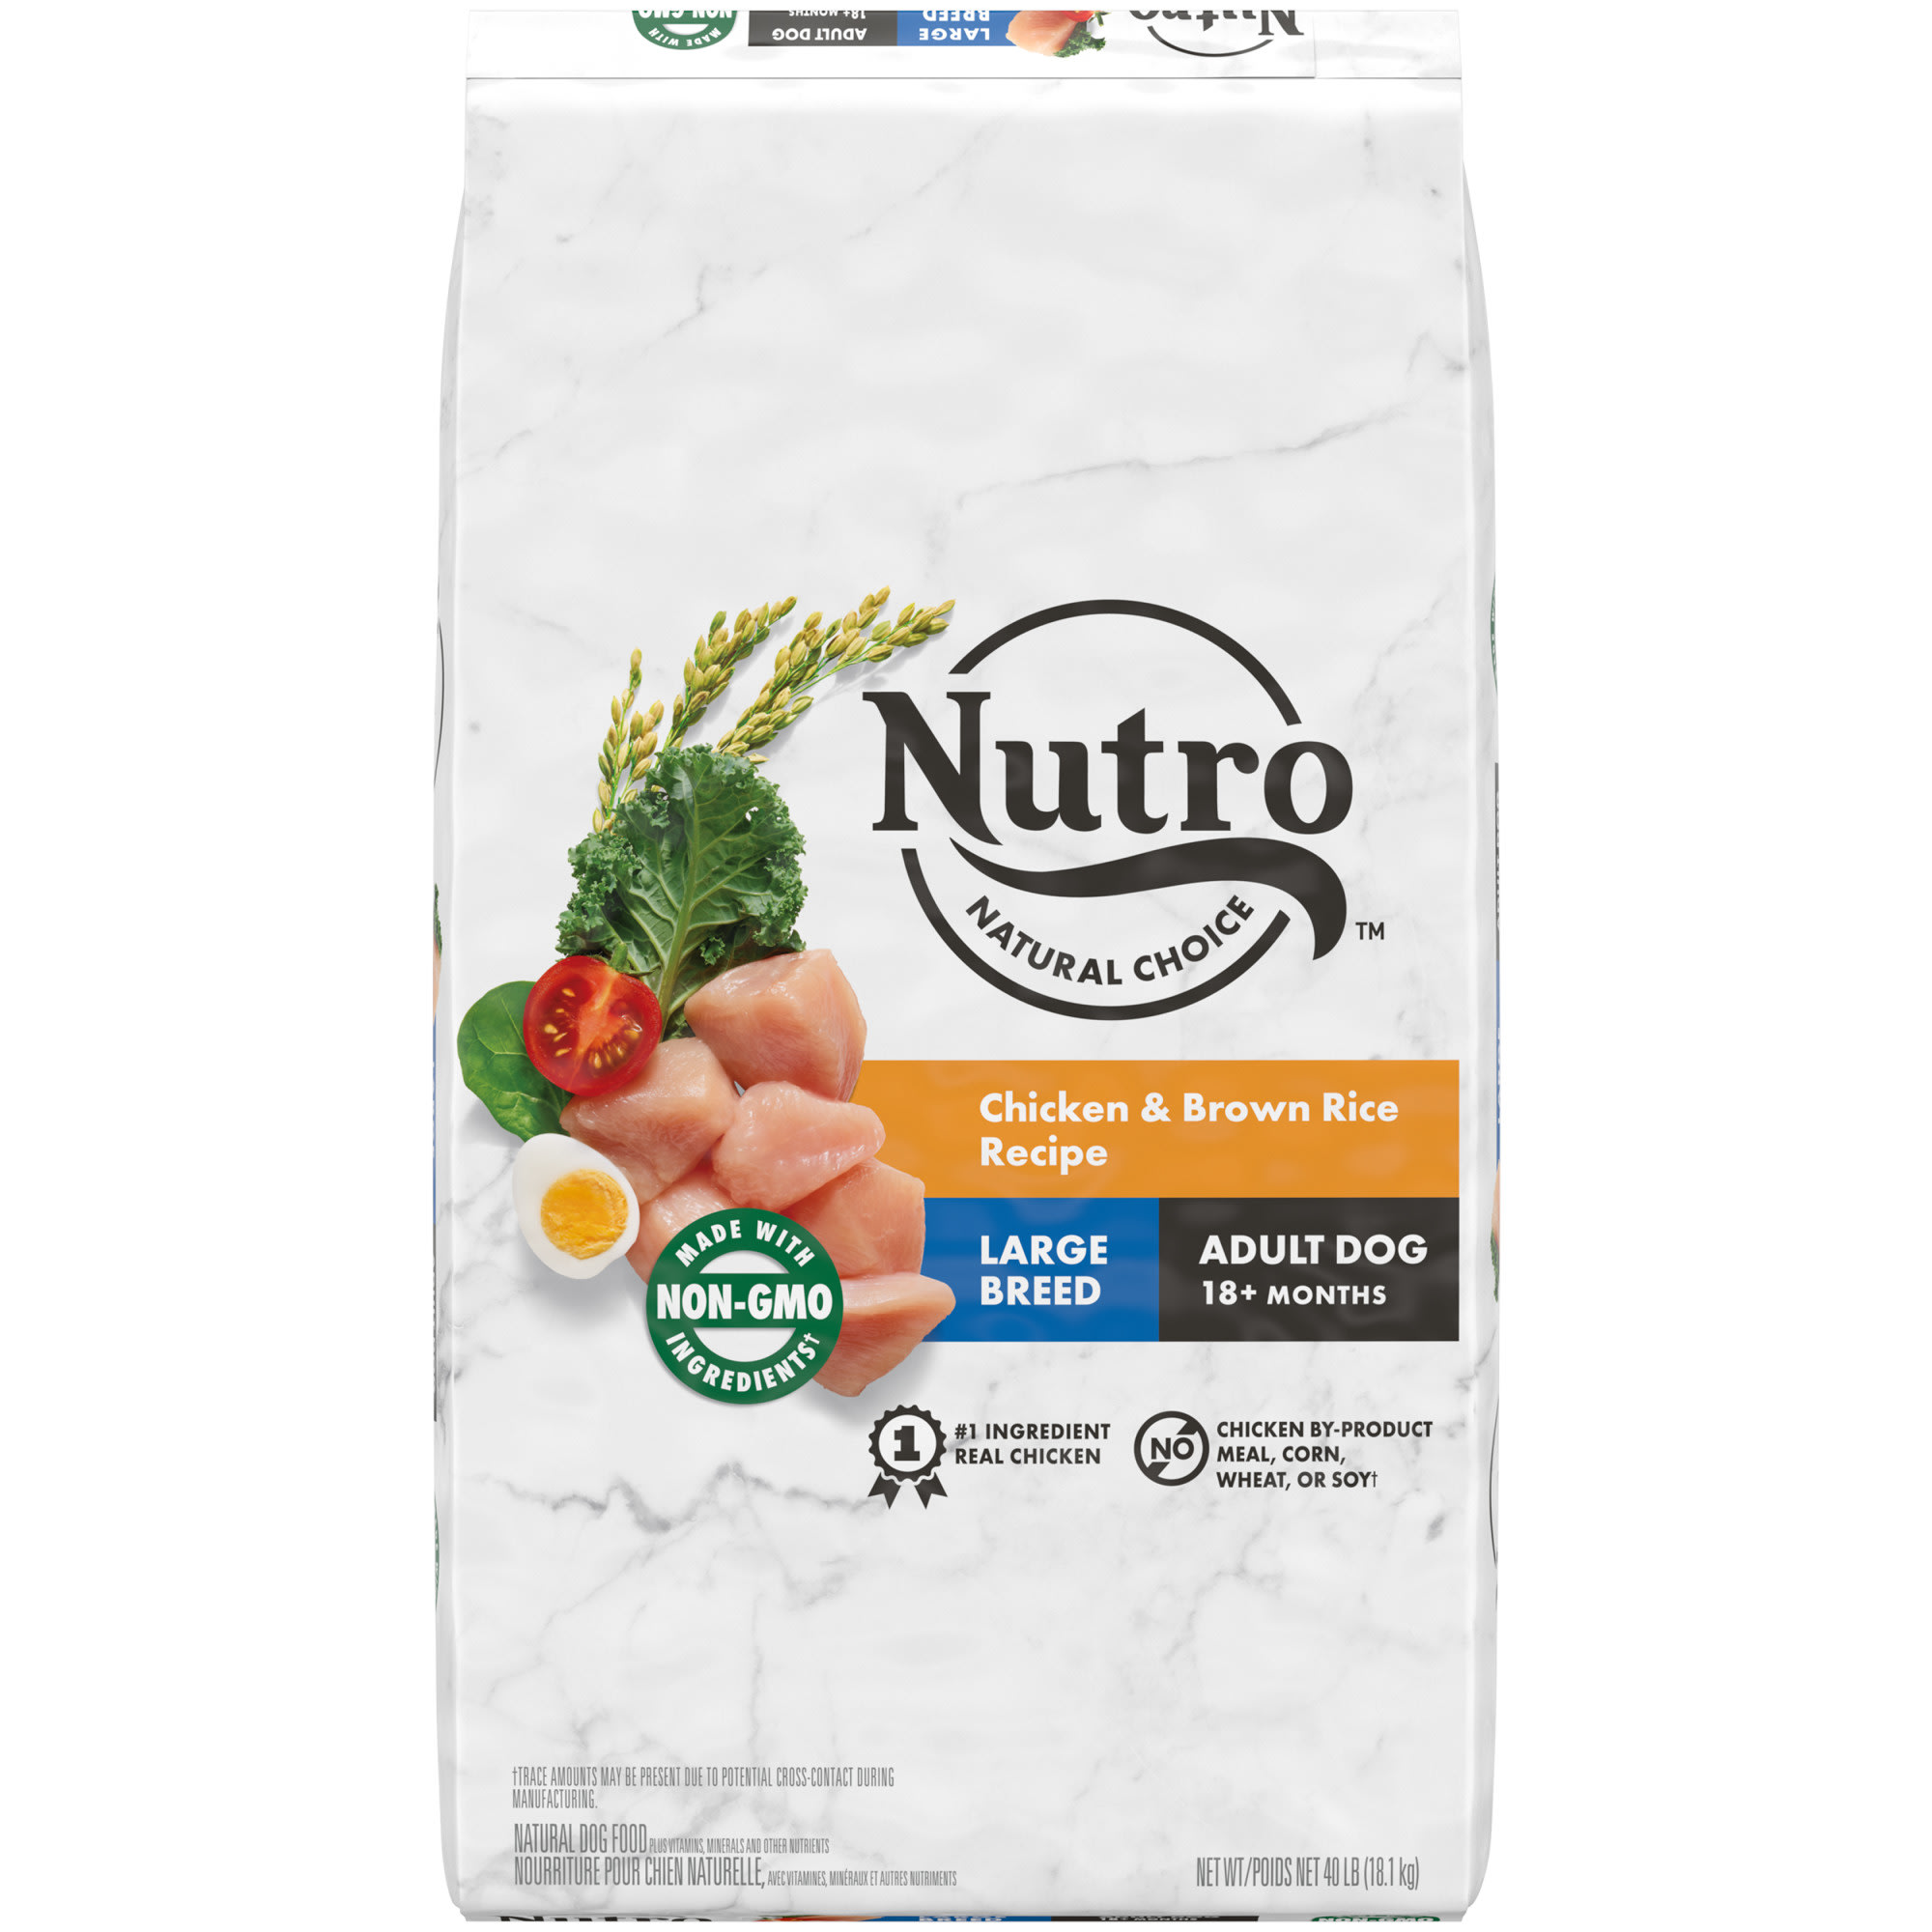 Nutro Natural Choice Chicken & Brown Rice Recipe Large Breed Adult Dry Dog